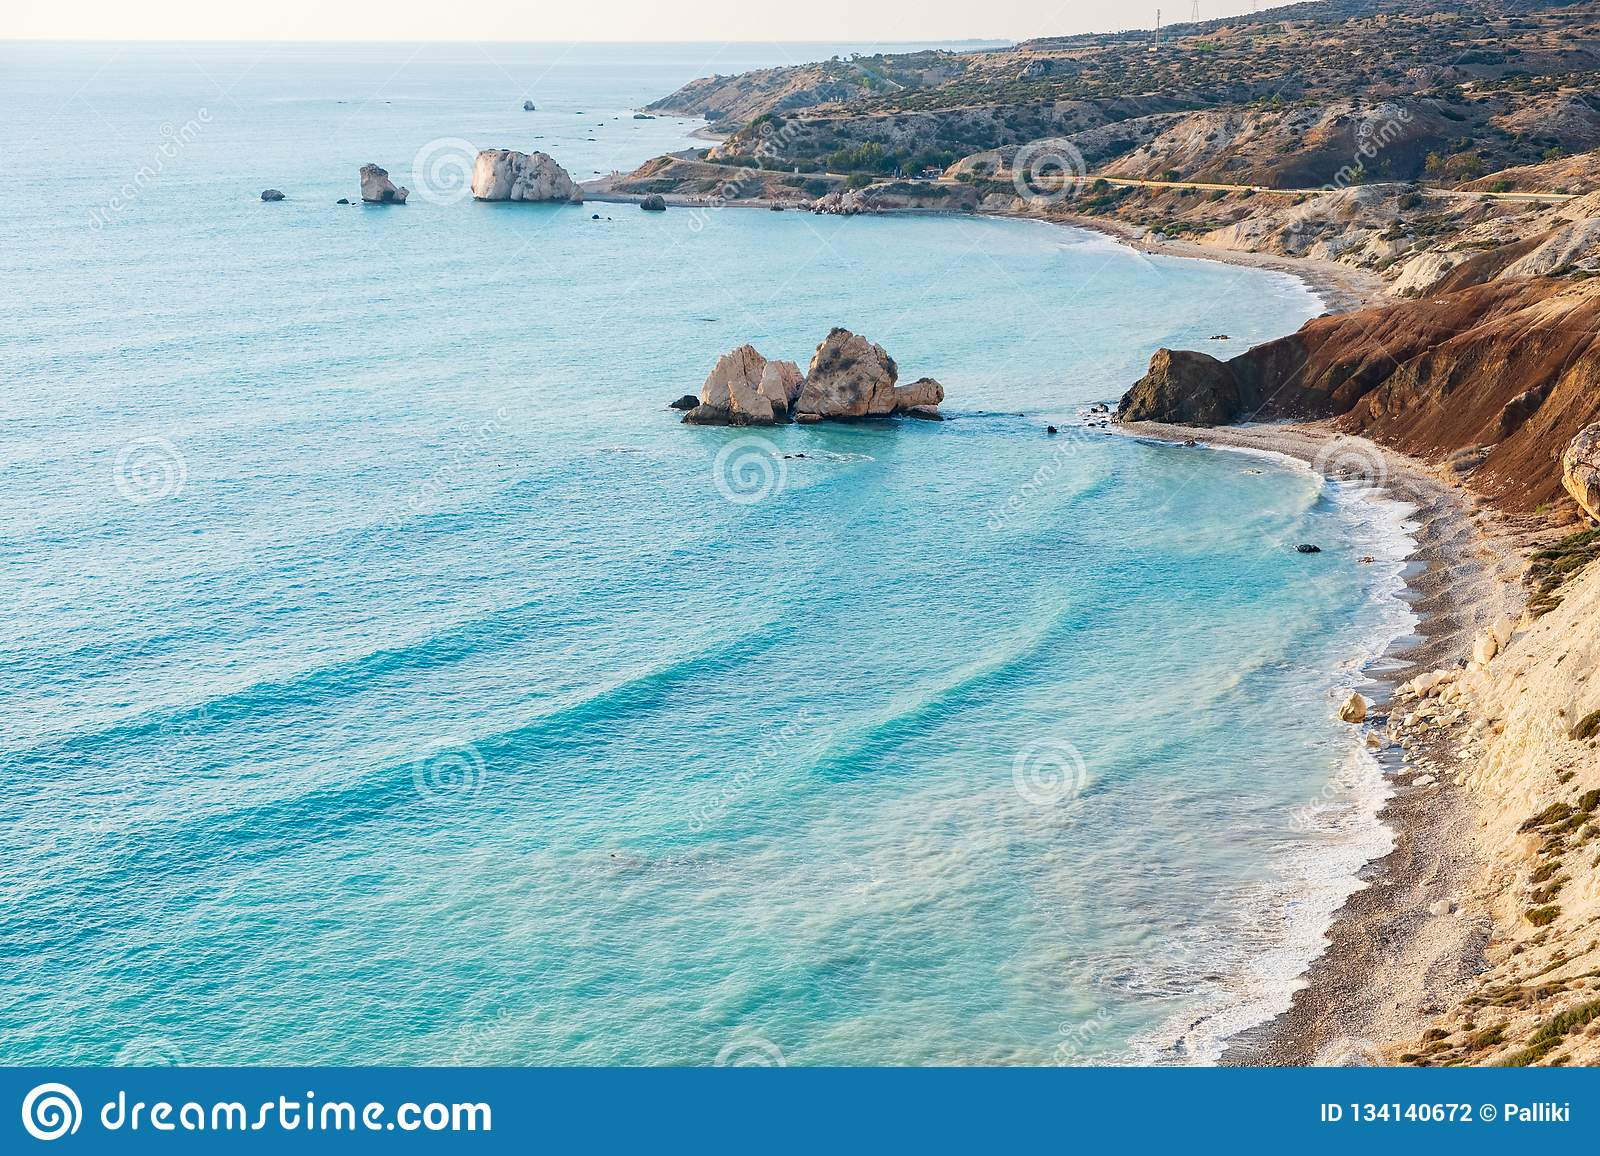 It Was Beautiful Afternoon For >> Petra Tou Romiou Rock On A Beautiful Afternoon In Paphos Cyprus